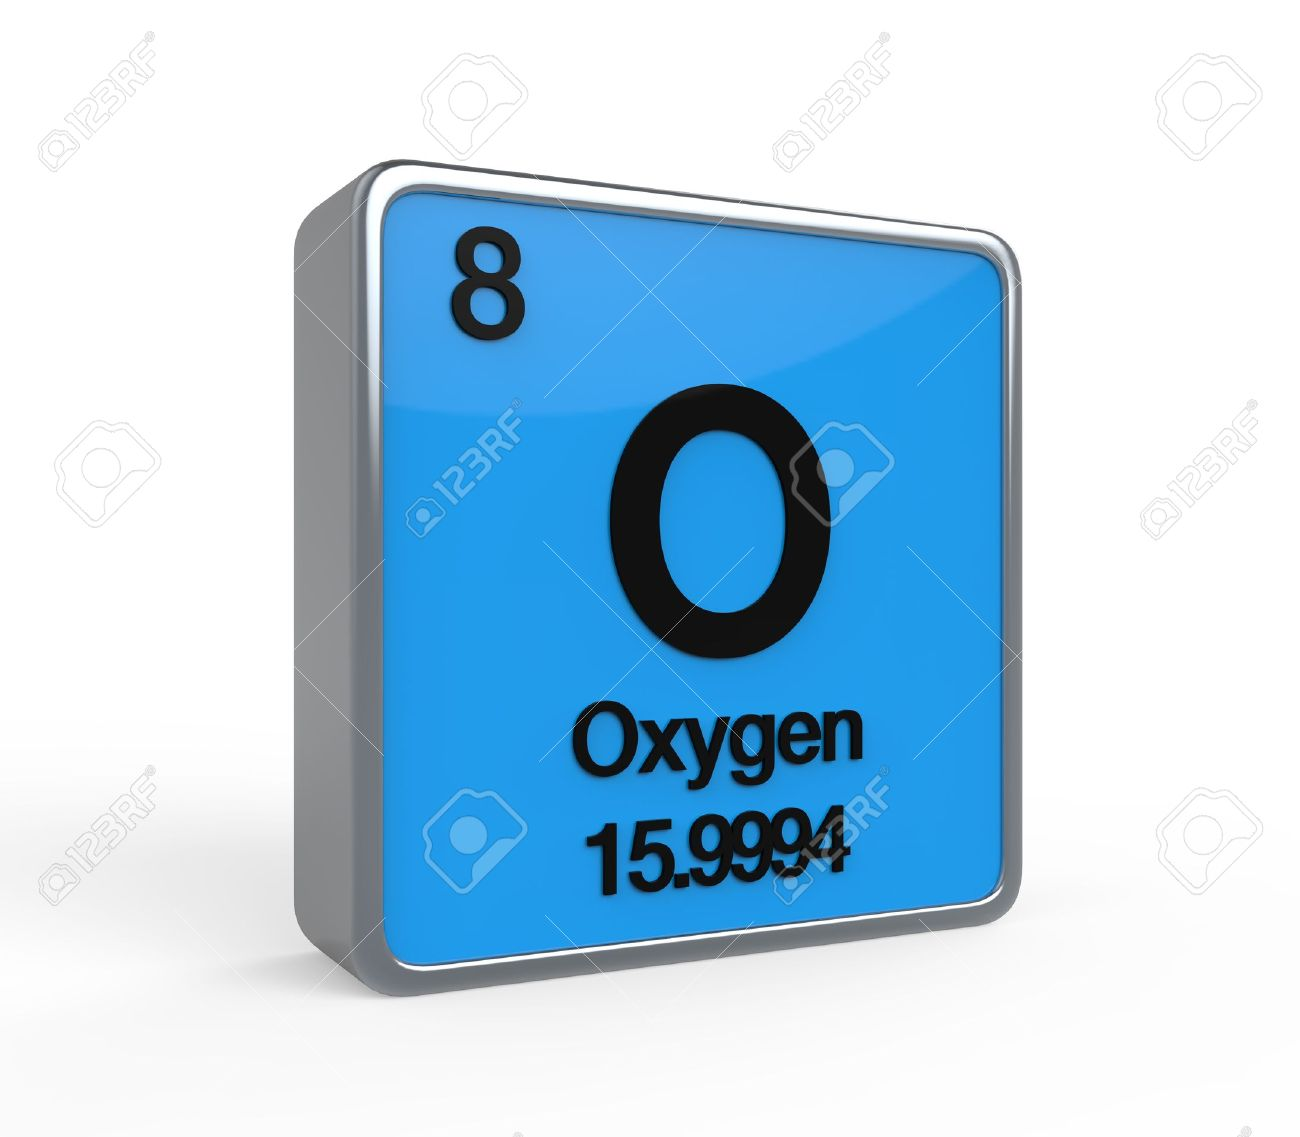 Oxygen element periodic table stock photo picture and royalty oxygen element periodic table stock photo 20429786 gamestrikefo Image collections